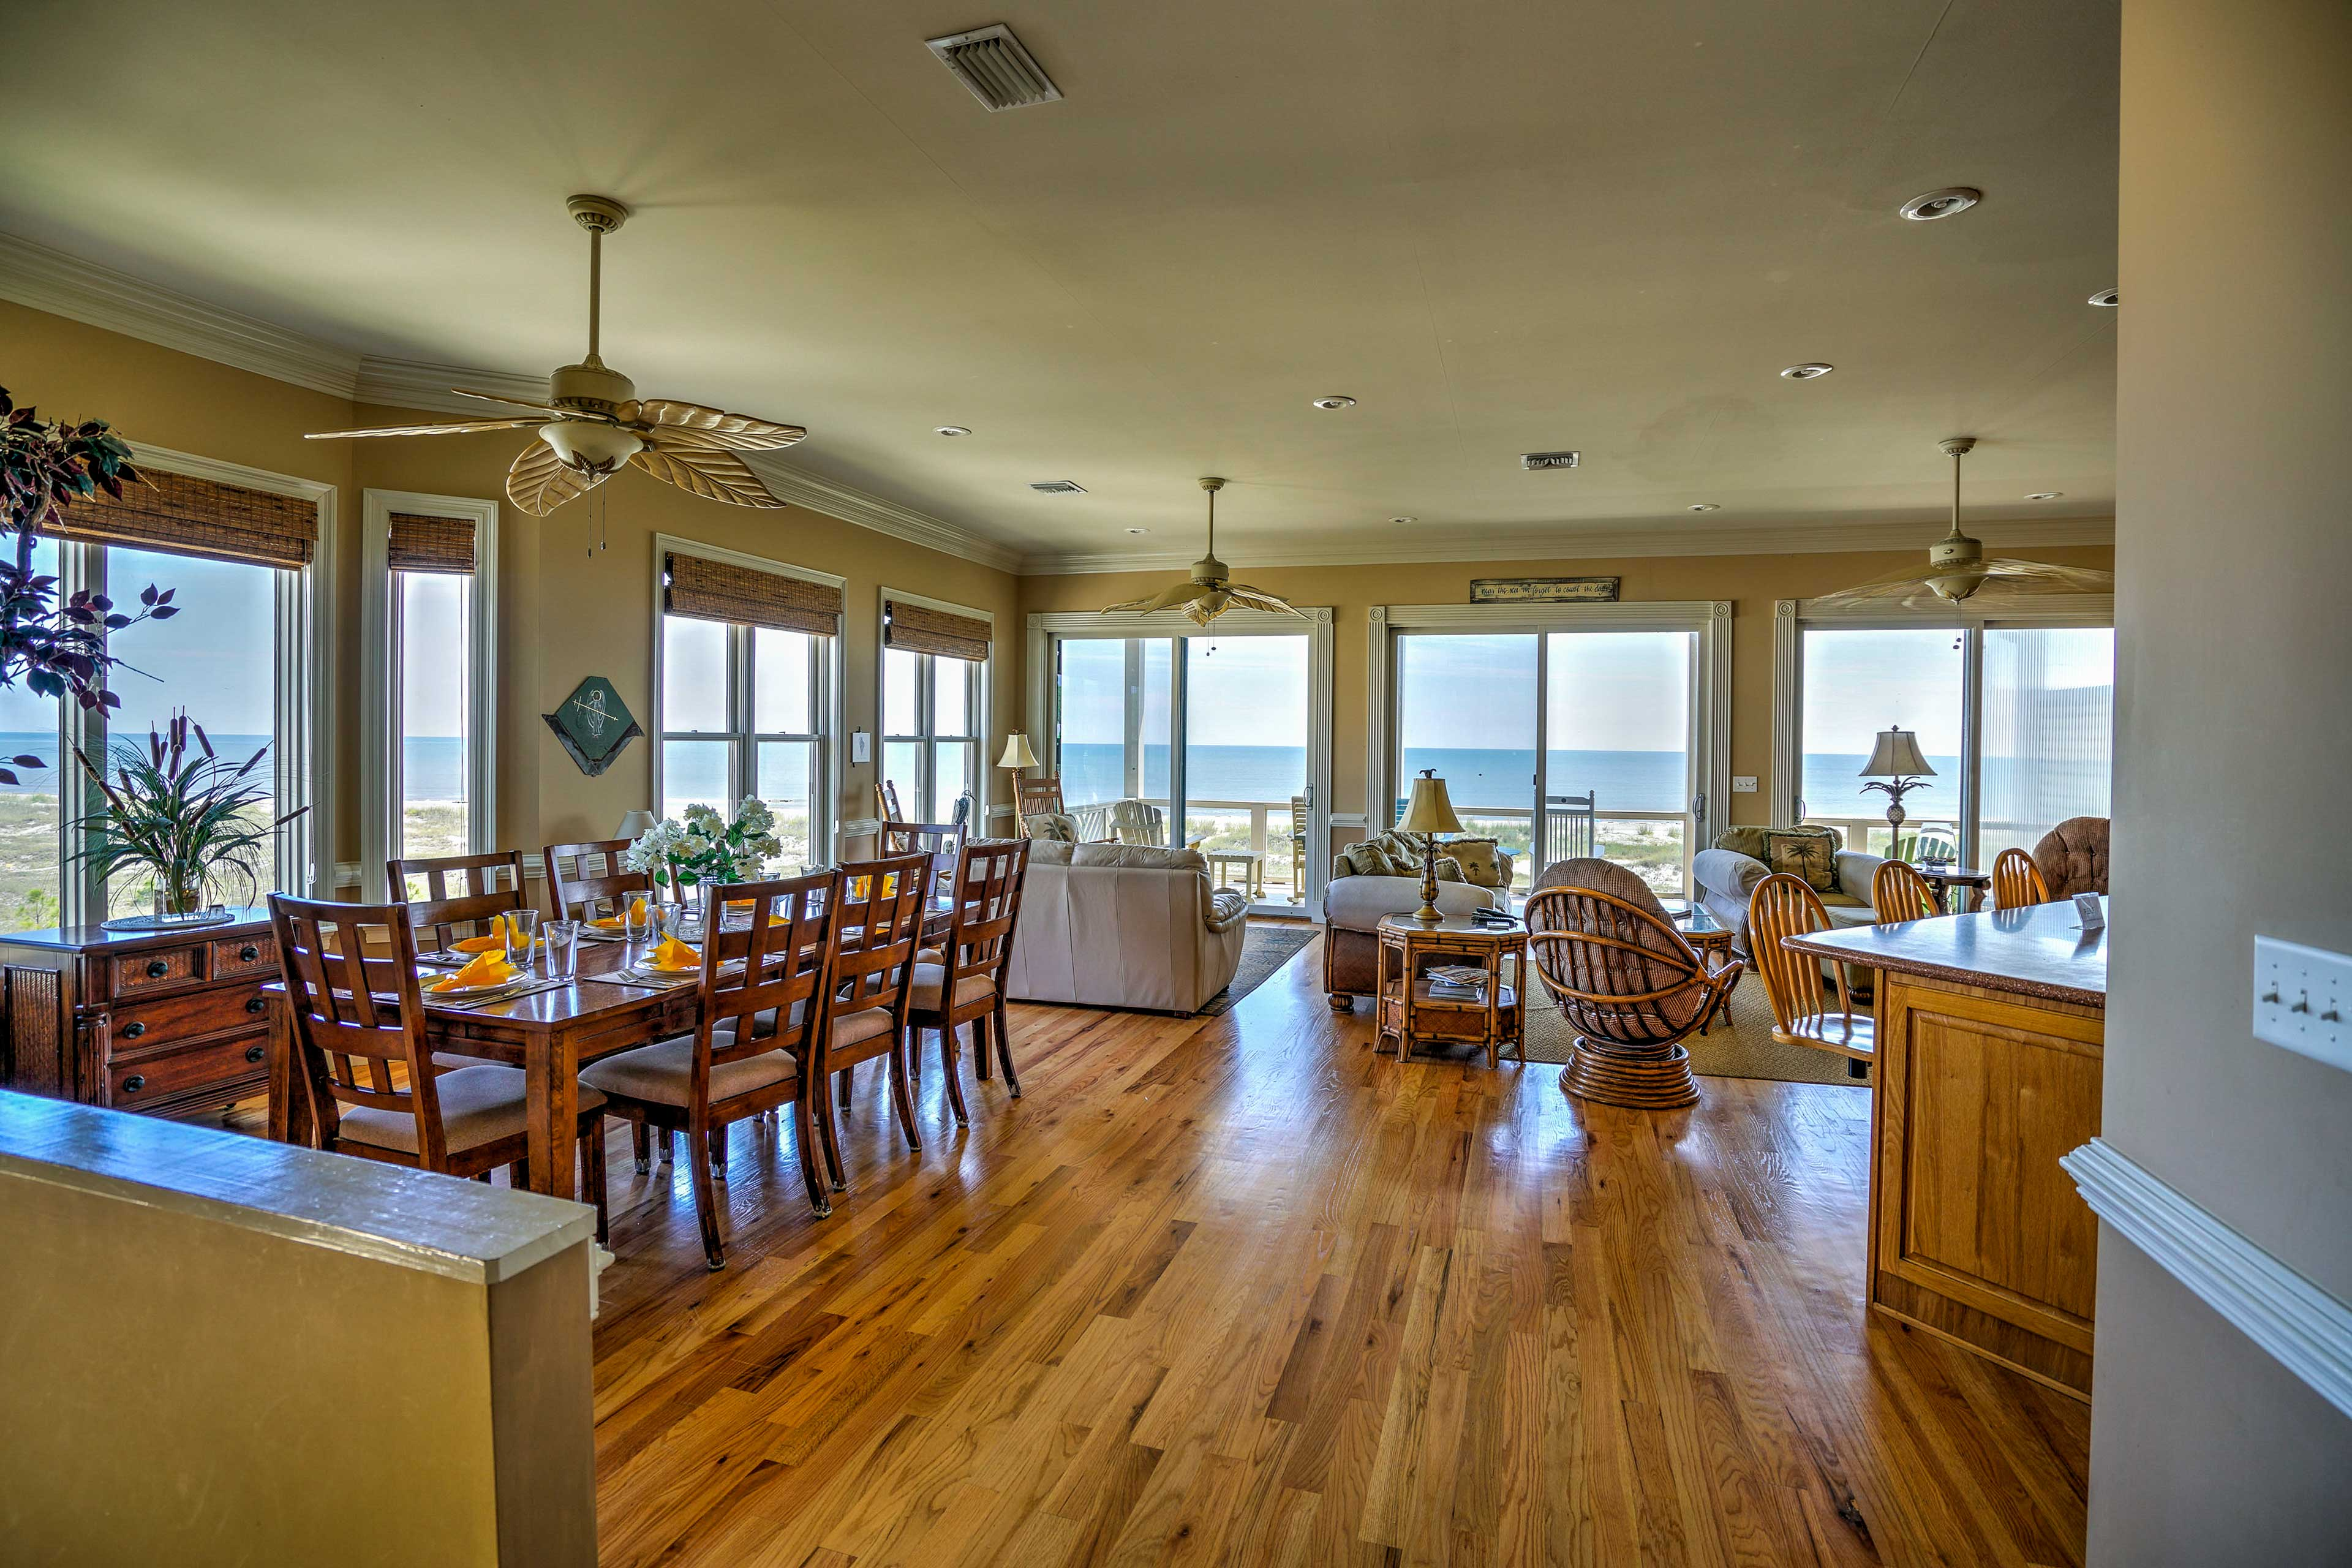 Step inside to be greeted by views of the Gulf displayed on the wall of windows.